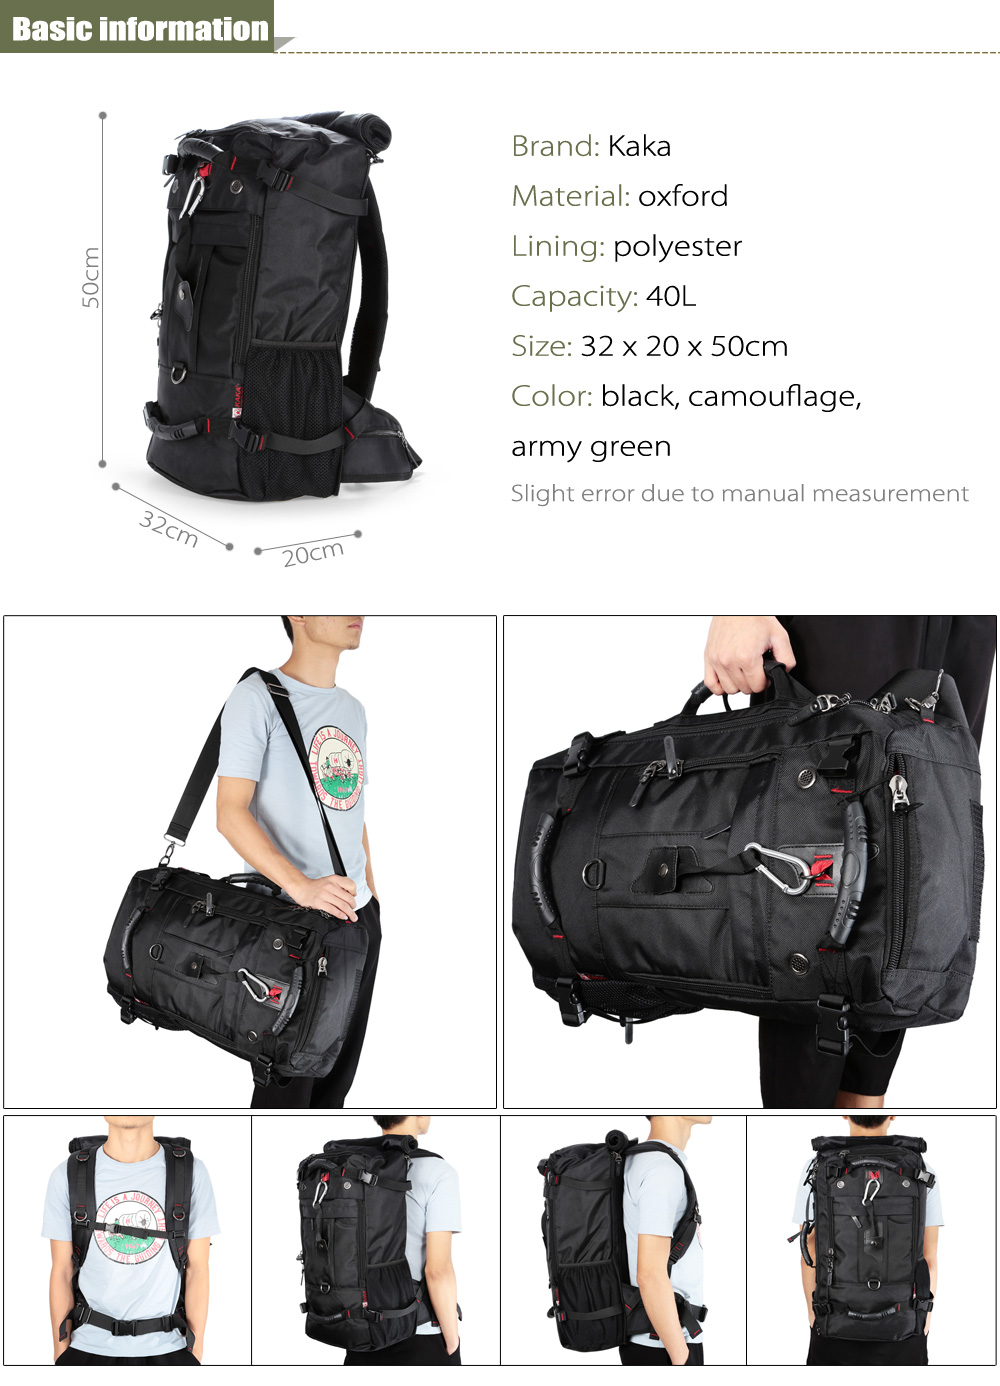 Kaka 2070 Water-resistant 40L Mountaineering Backpack with Polyester Lining